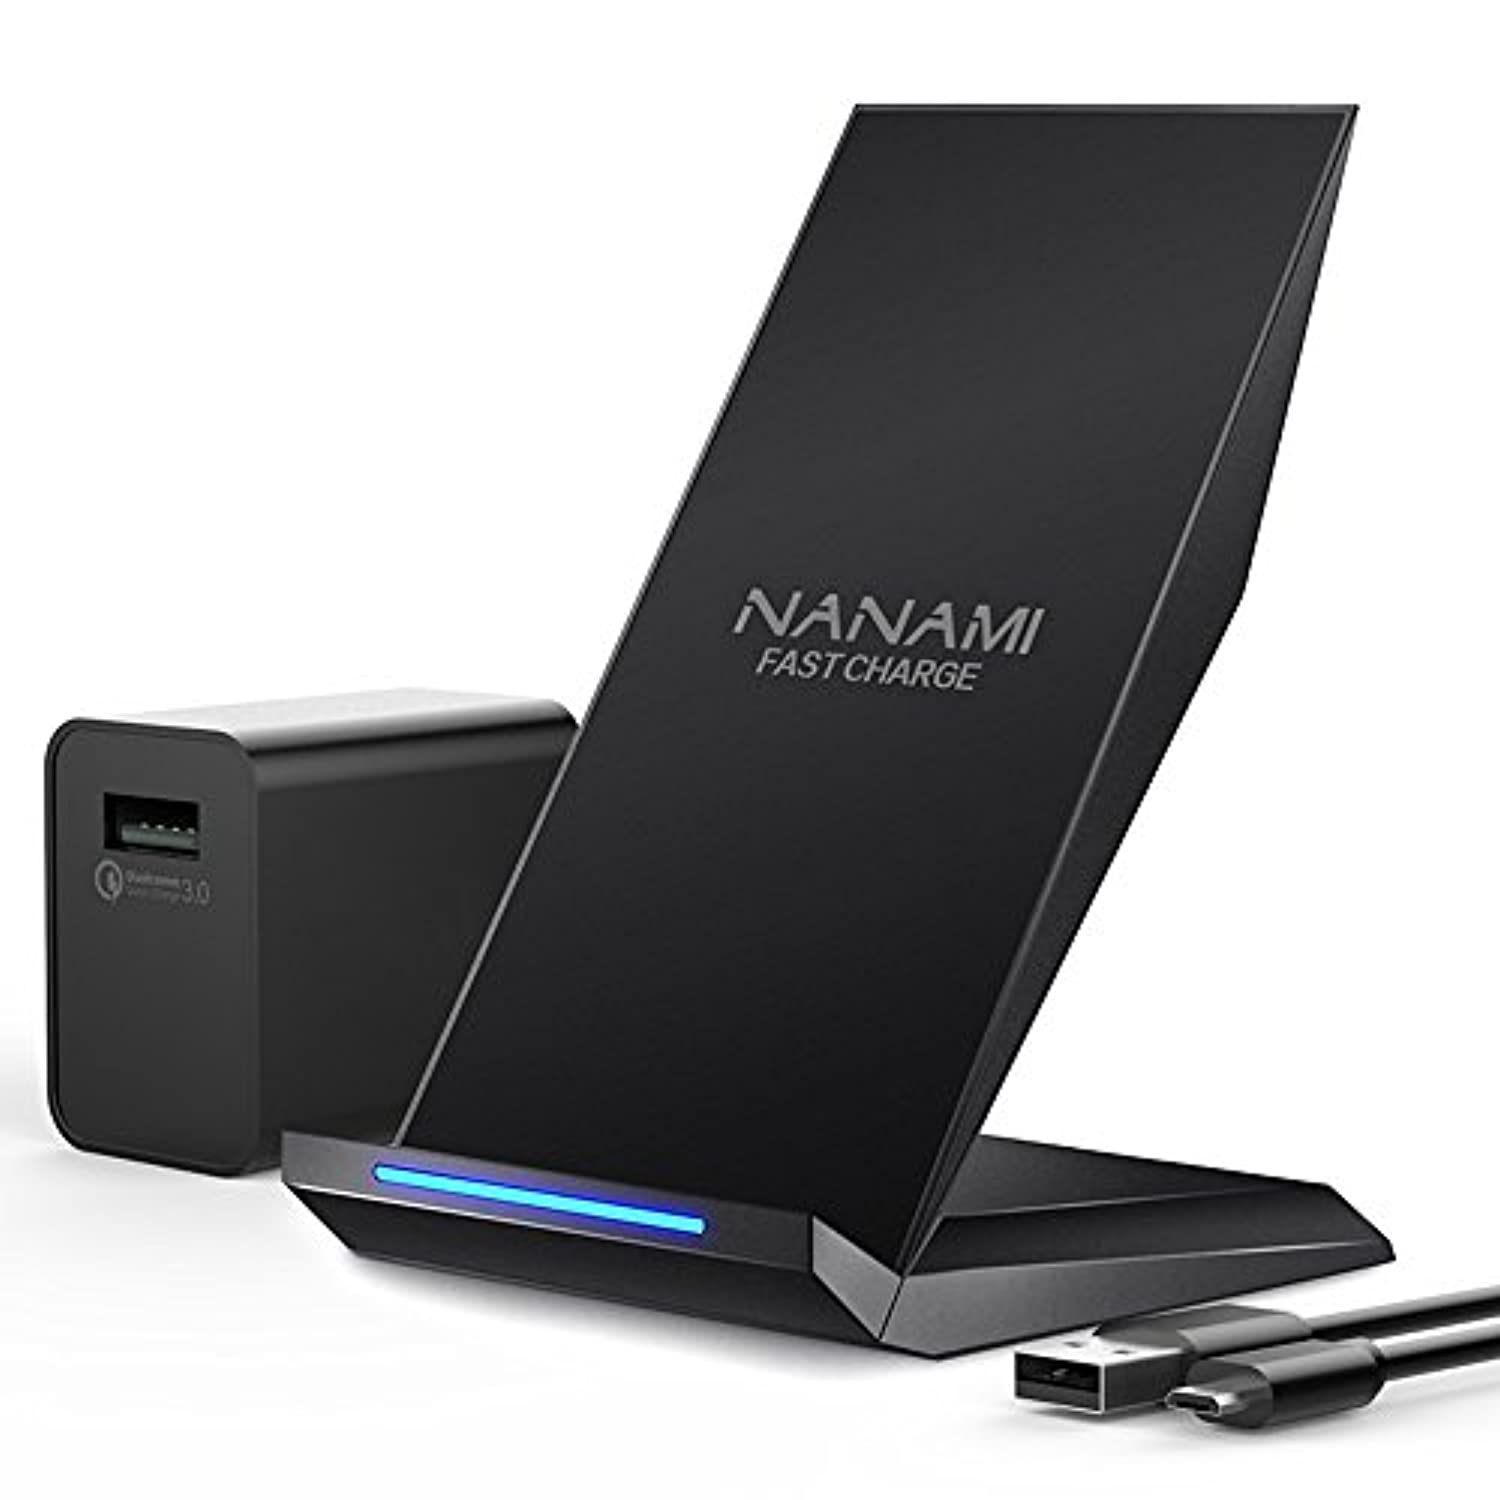 NANAMI Qi急速ワイヤレス充電器セット ?QC 3.0アダプター付属? 2コイル Quick Charge 3.0 ワイヤレスチャージャー おくだけ充電 iPhone X/ XS/ XR/ XS Max/ 8 / 8 Plus、Galaxy S9/S9 Plus/ Note9/ Note8/S8/S8 Plus/ S7/S7 Edge/Note 5/S6 Edge Plus/他Qi対応機種 qi 充電器 黒色セット(日本語説明書付属)